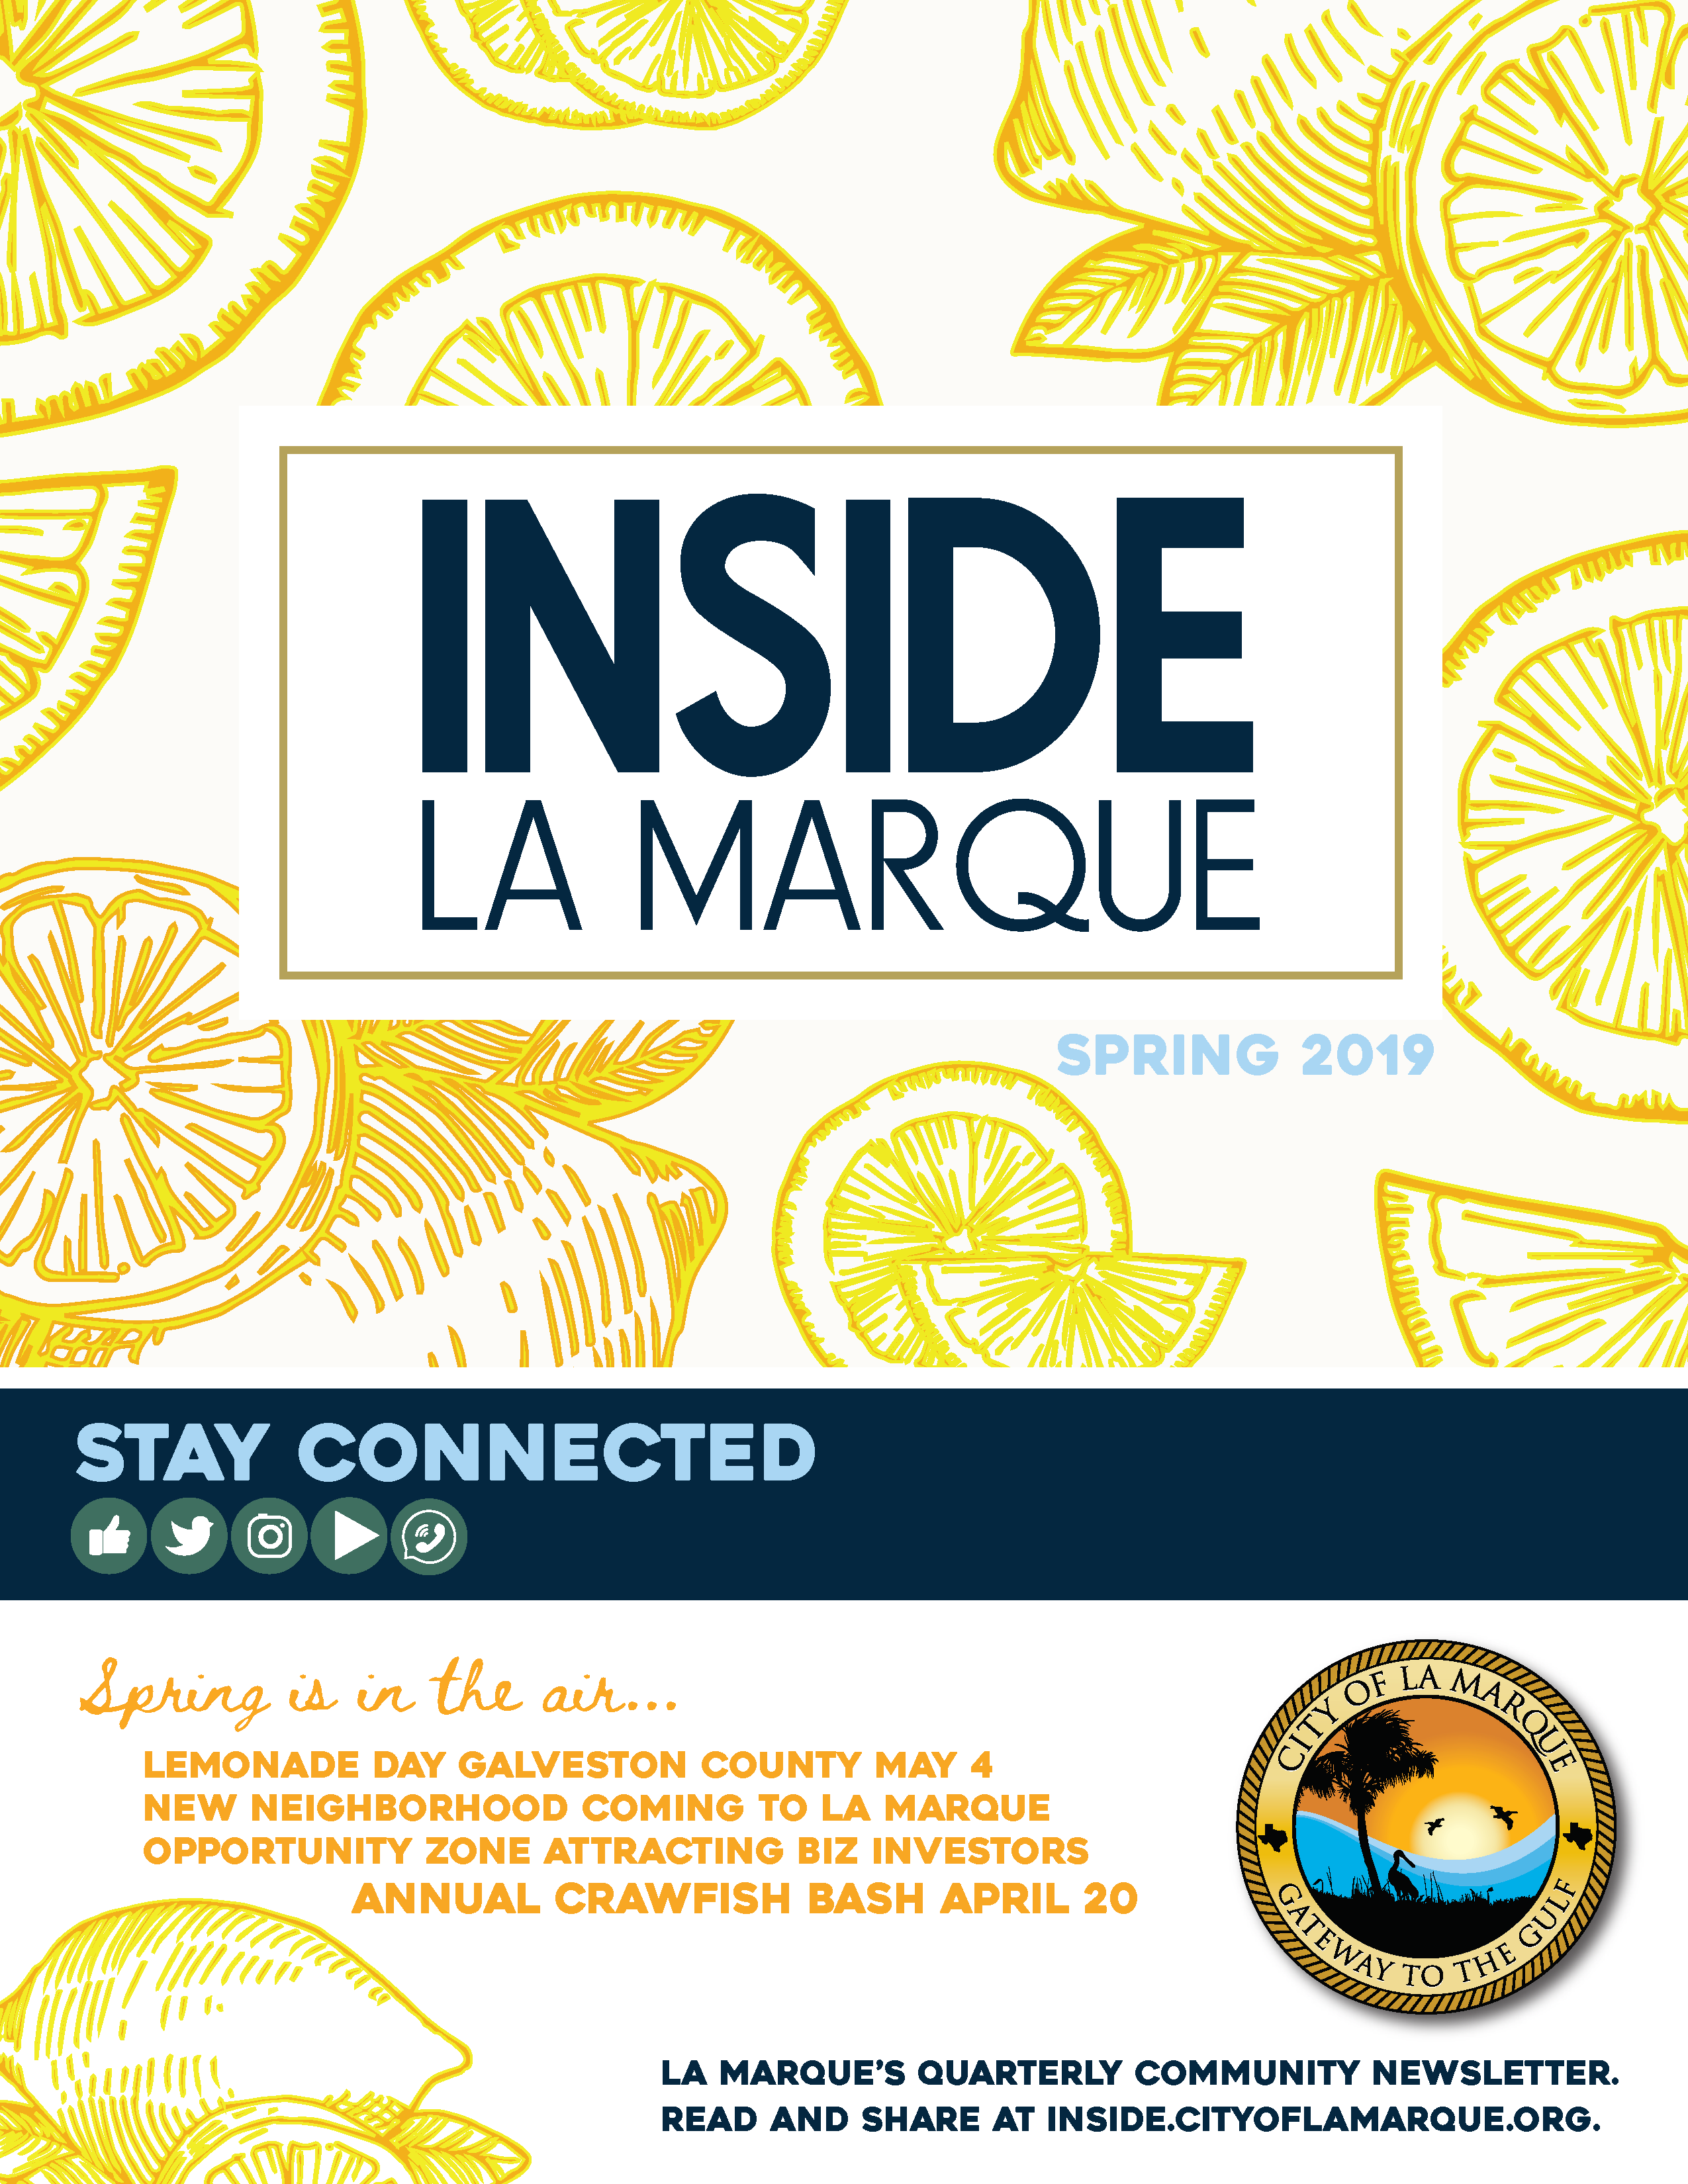 COVER_Inside La Marque_VOL 11_Spring 19_31419_final 2